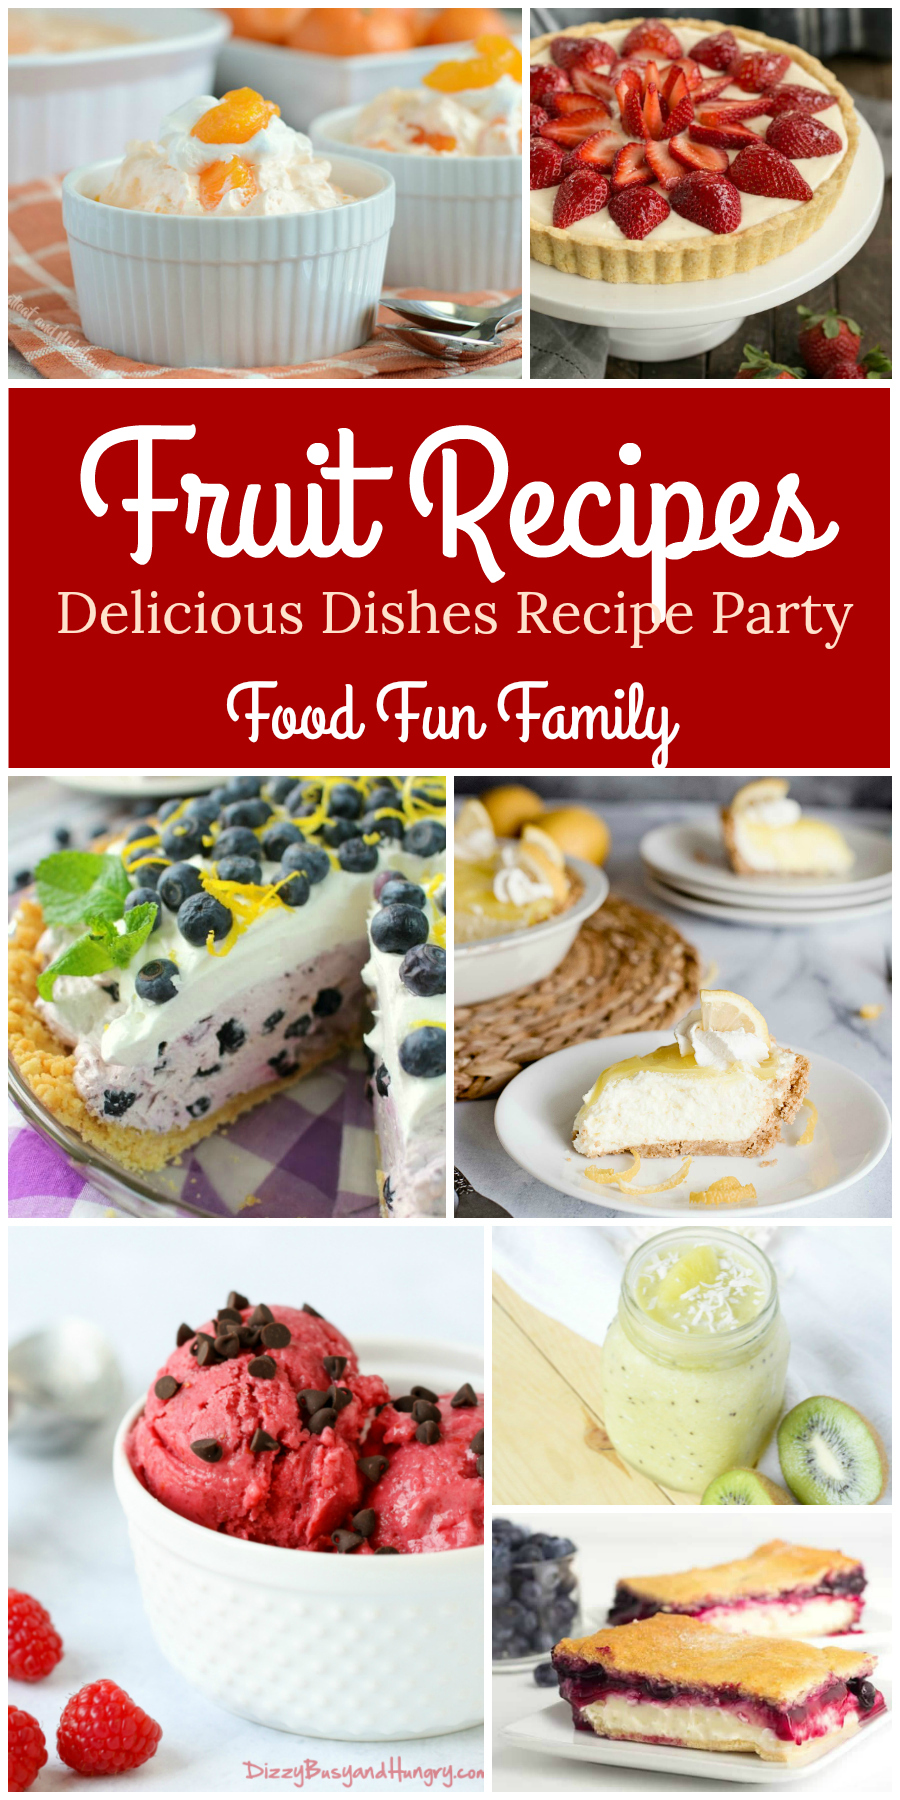 Tasty fruit recipes - a Delicious Dishes Recipe Party from Food Fun Family